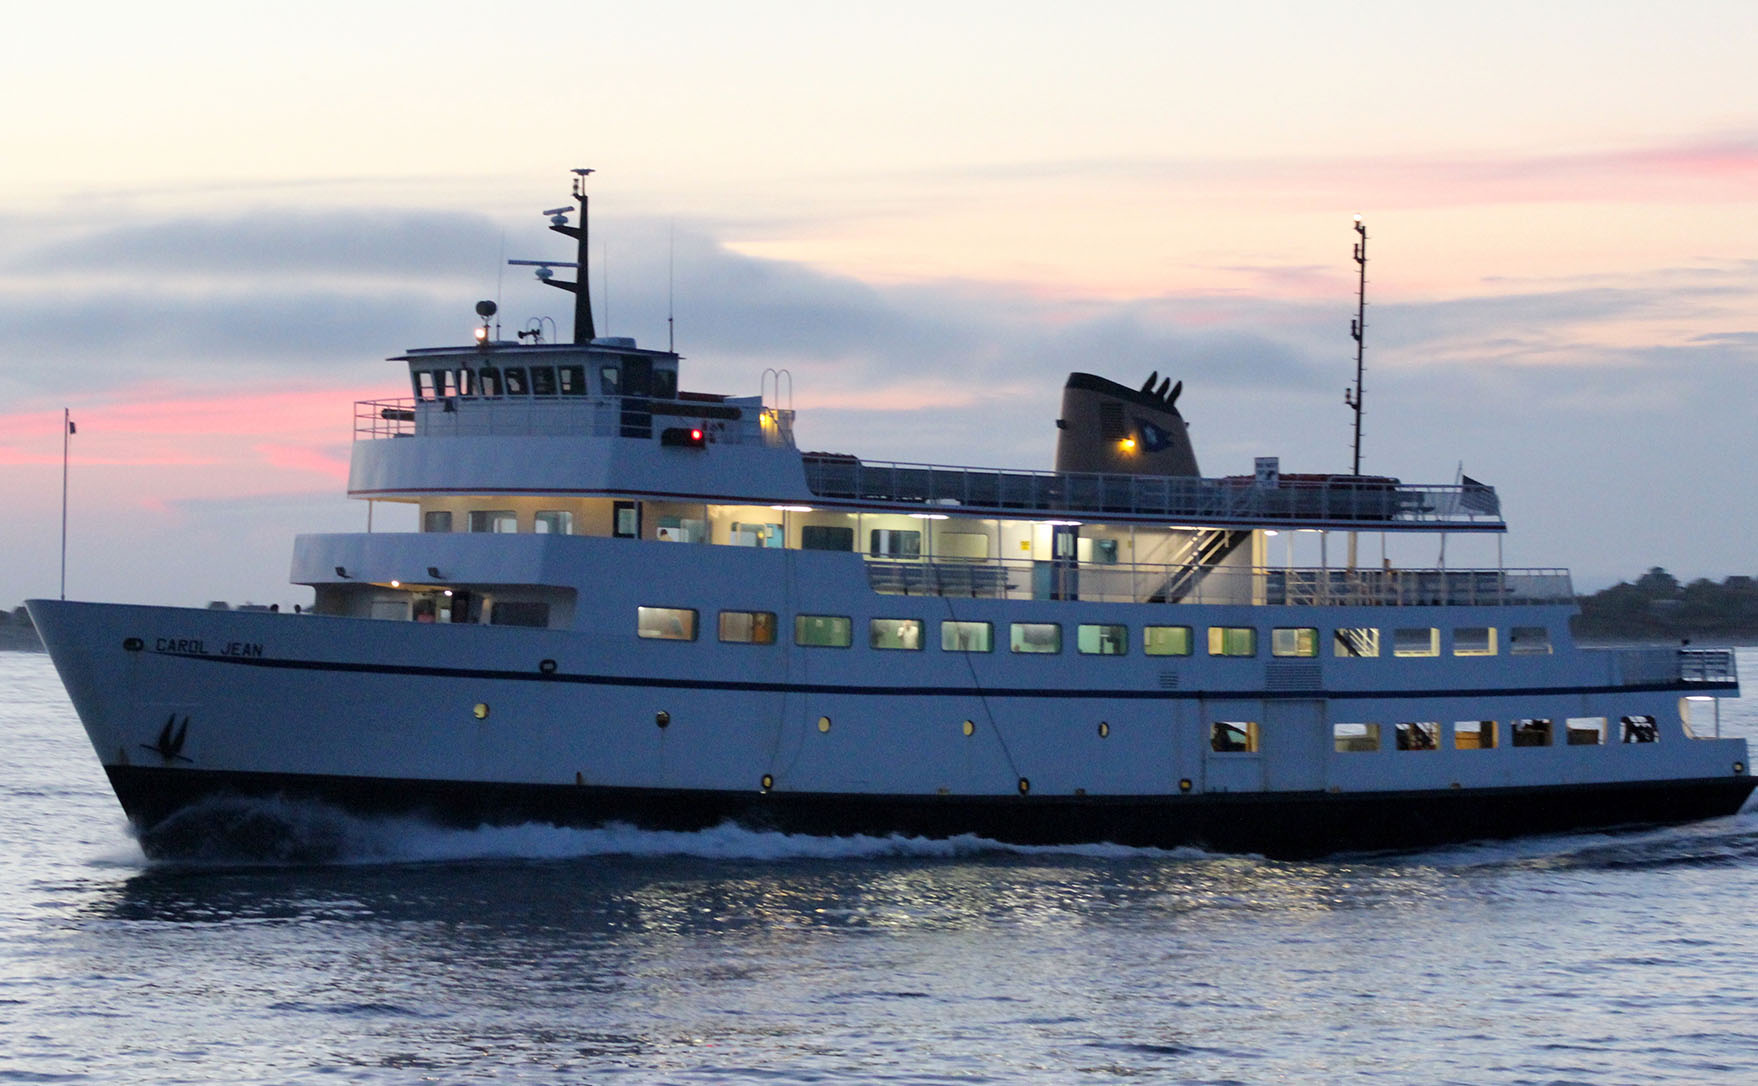 history of the block island ferry fleet: carol jean | block island ferry